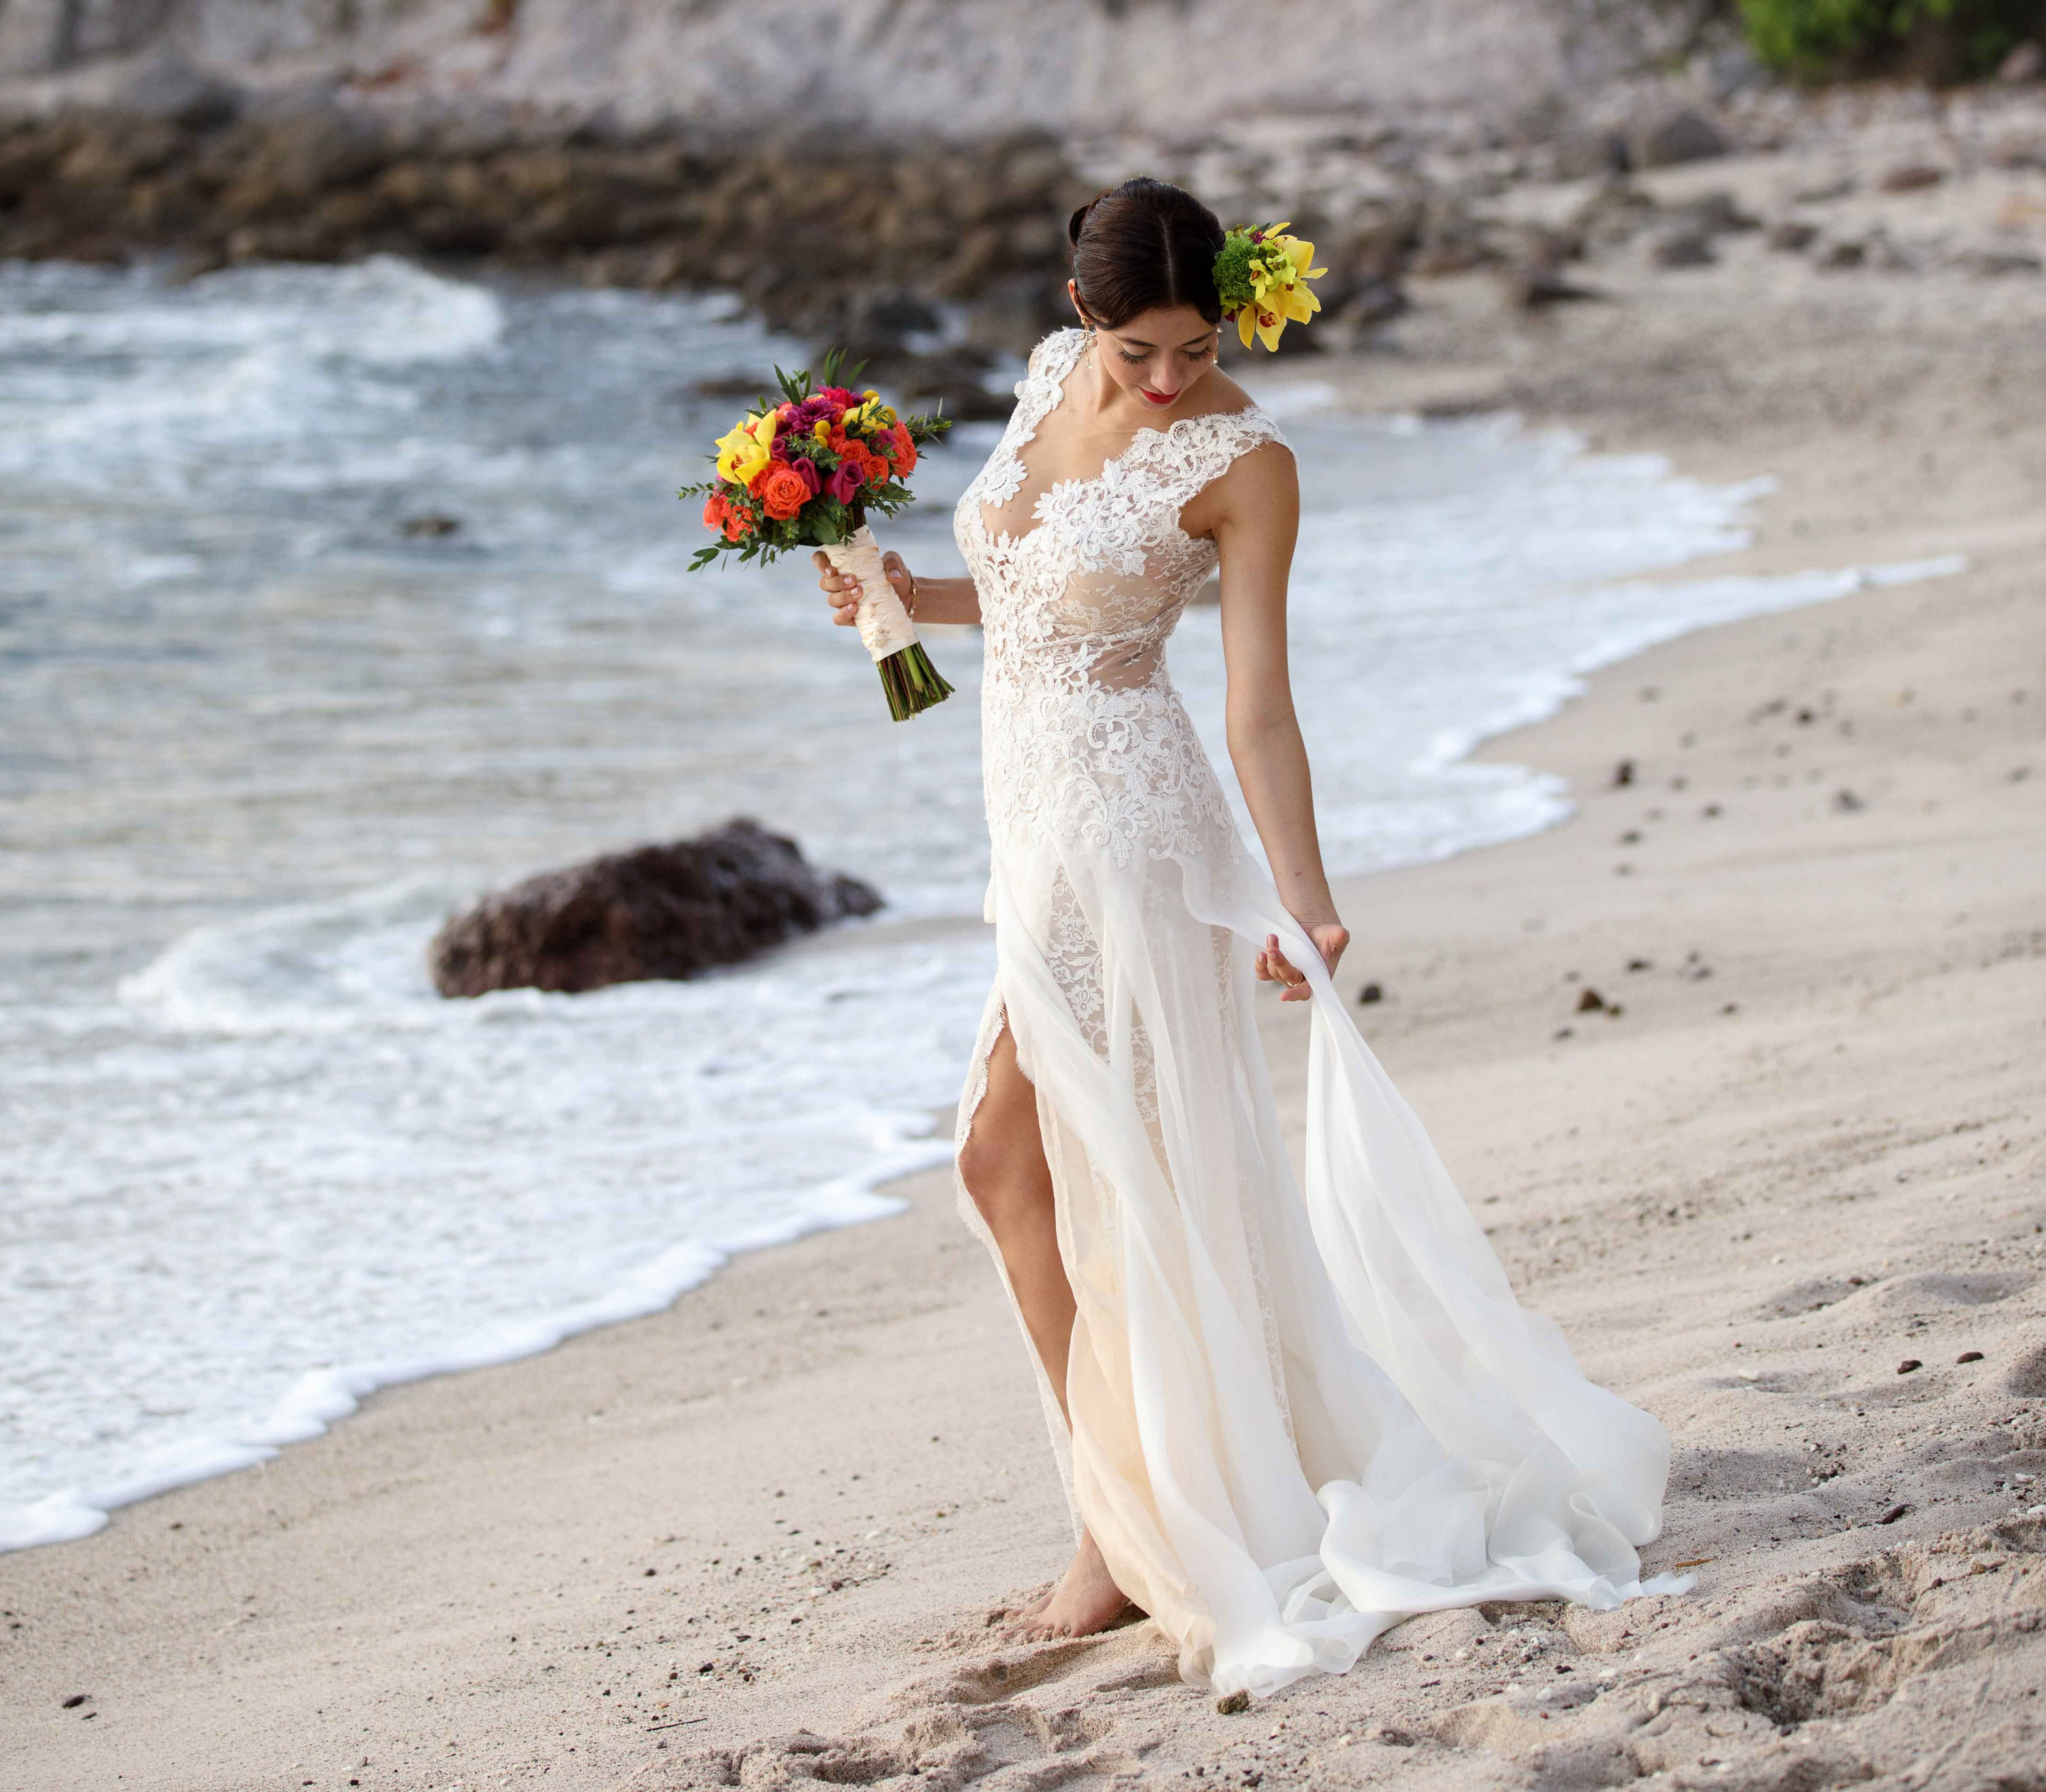 beach wedding dress tips, how to wear your wedding dress on the beach